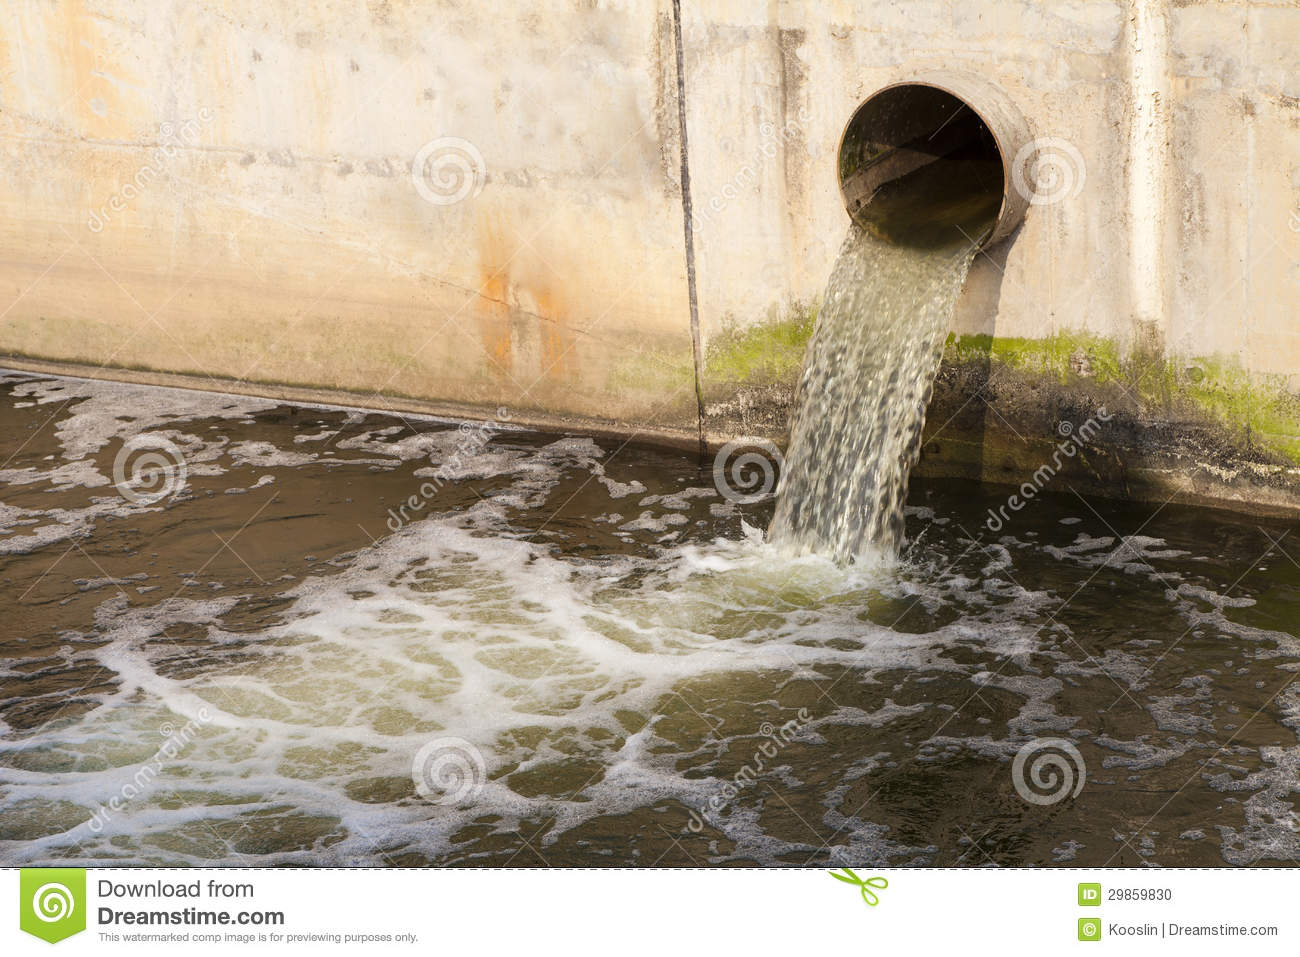 SUGGESTED BROWSING